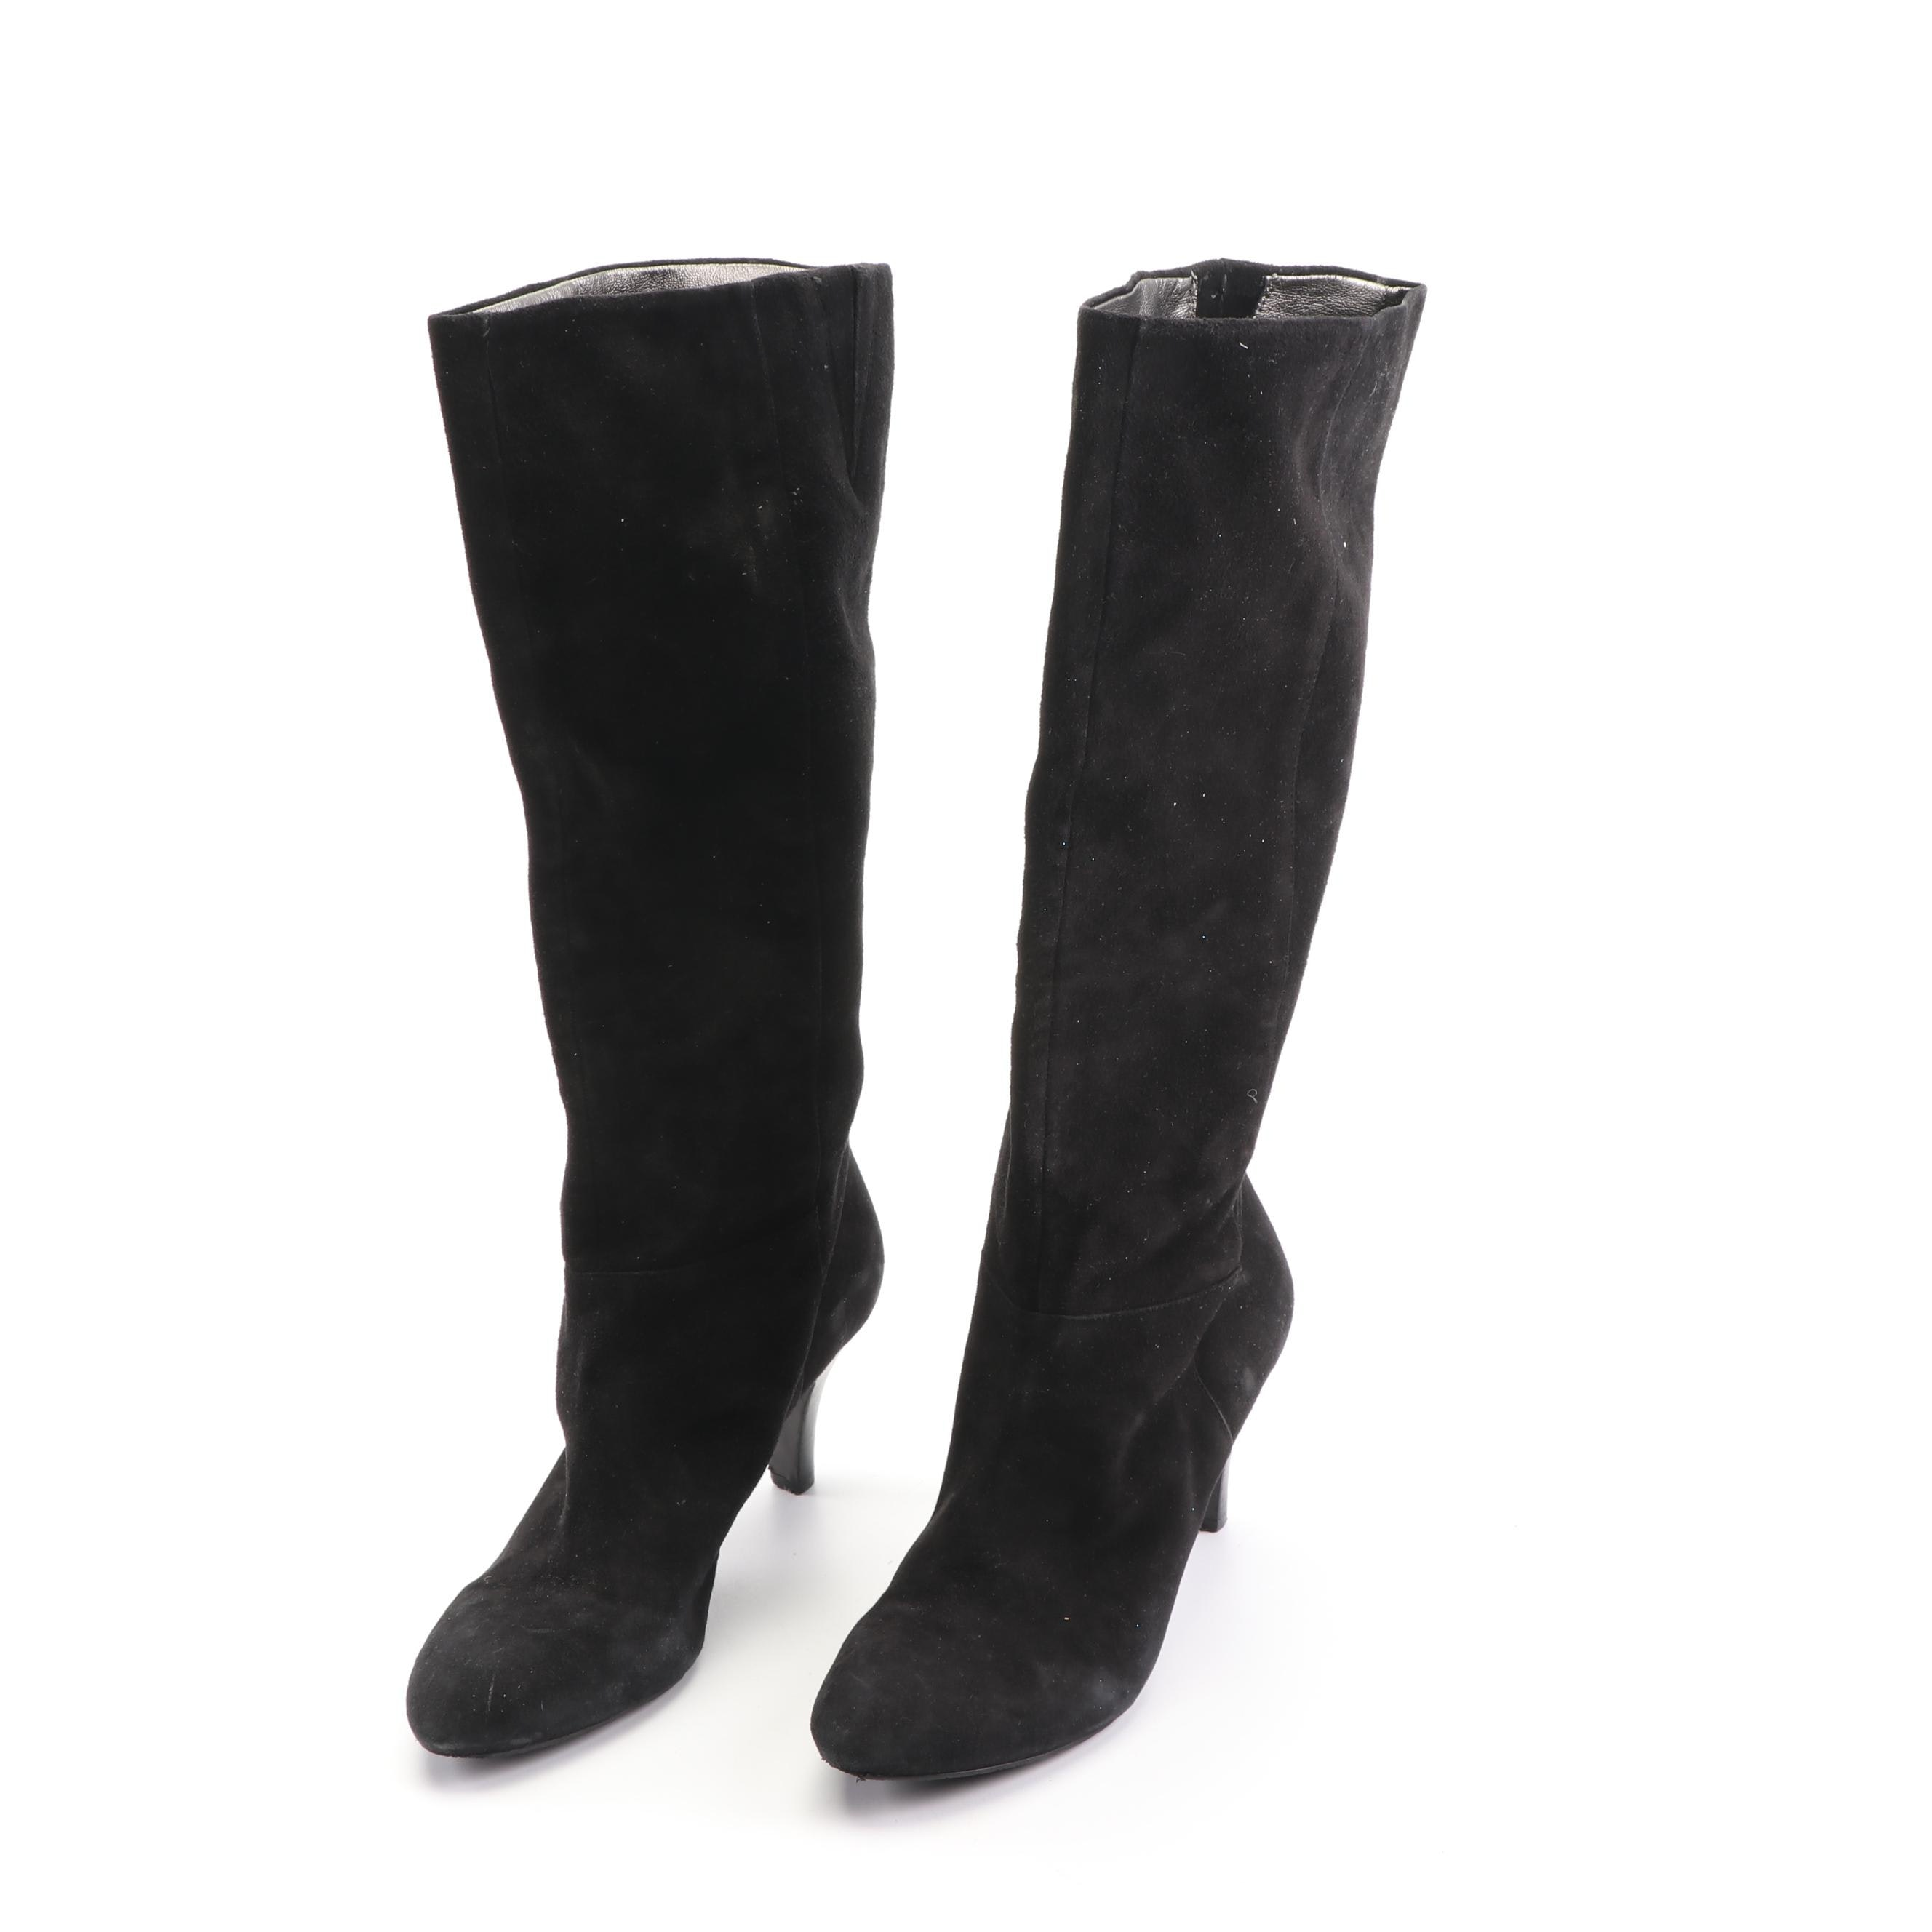 Women's Banana Republic Black Suede High-Heeled Tall Boots